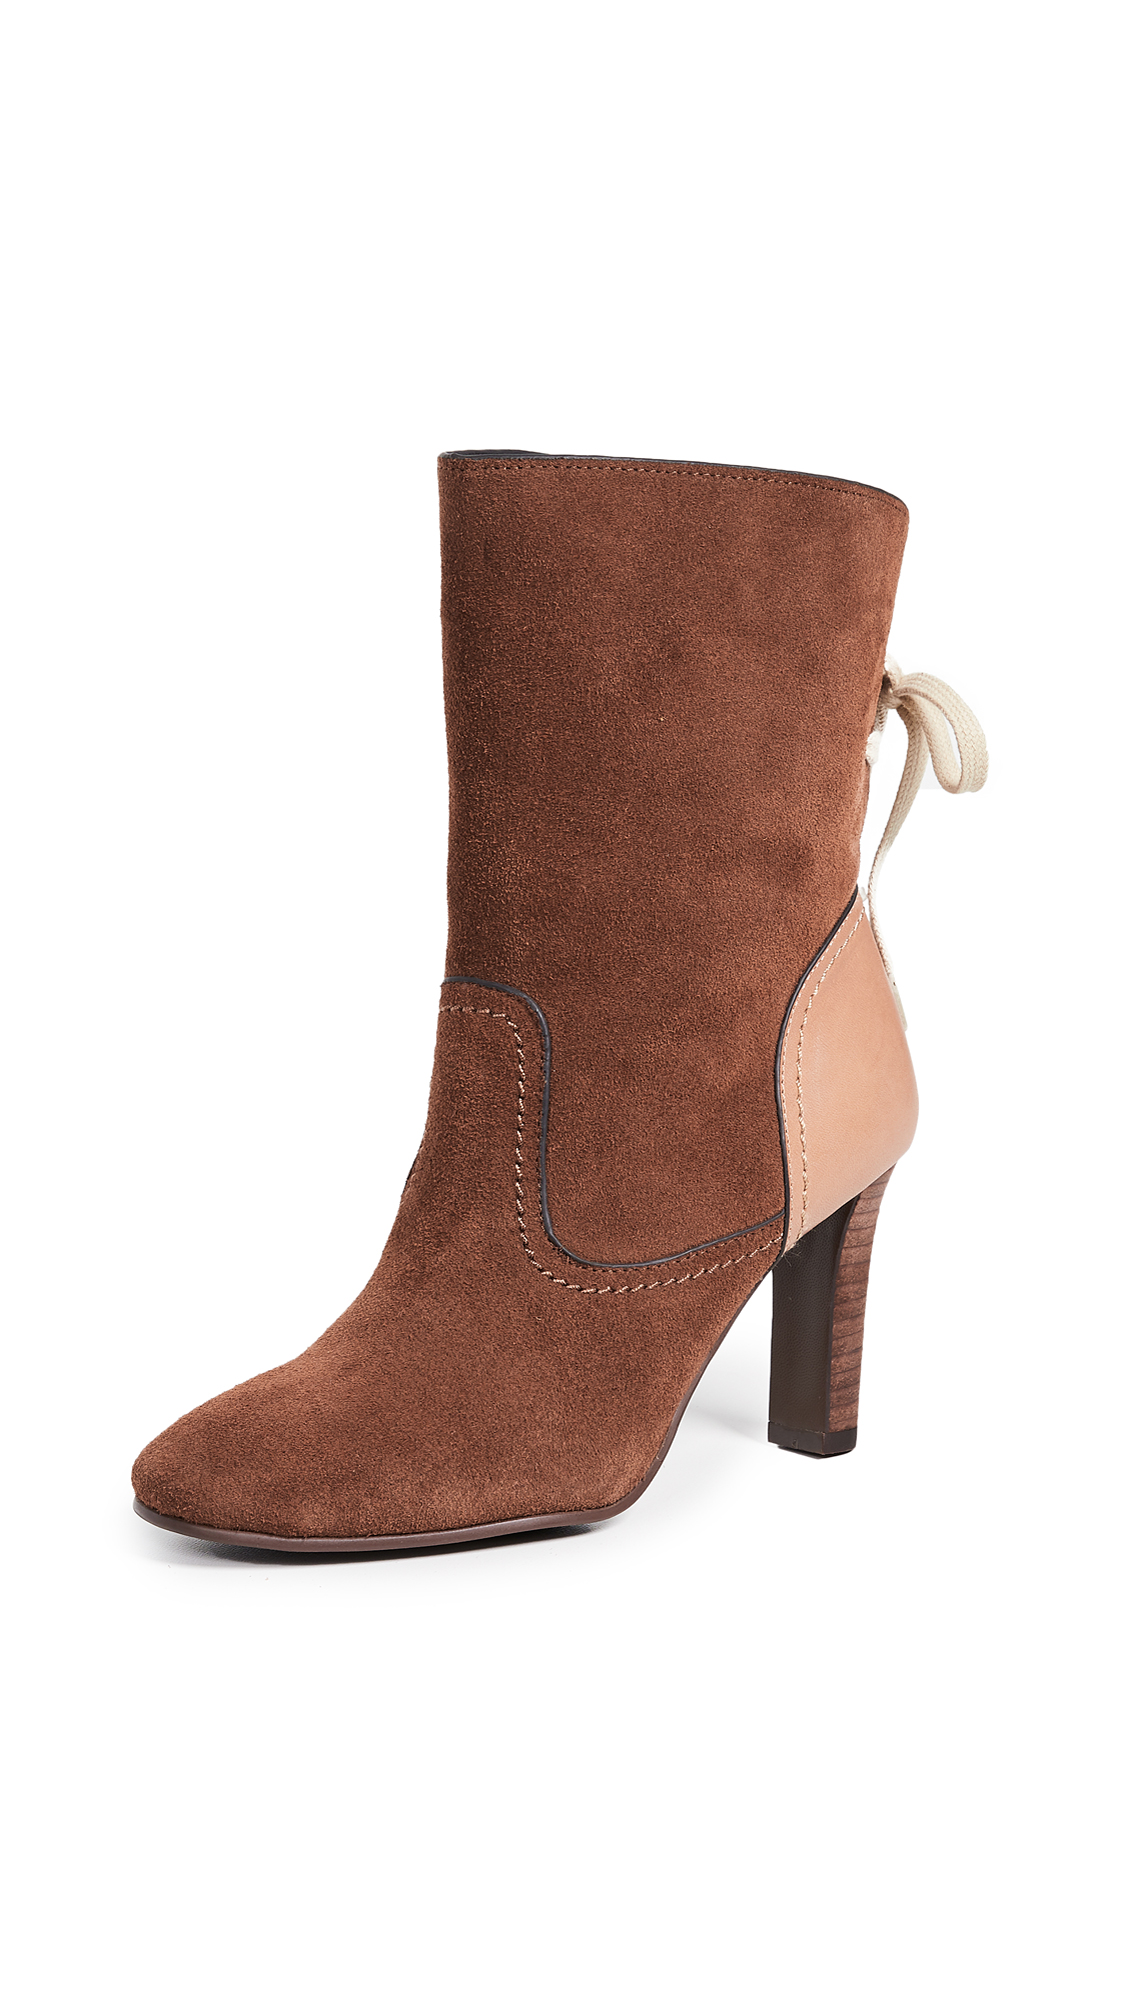 See by Chloe Lara Boots - Cola/Natural